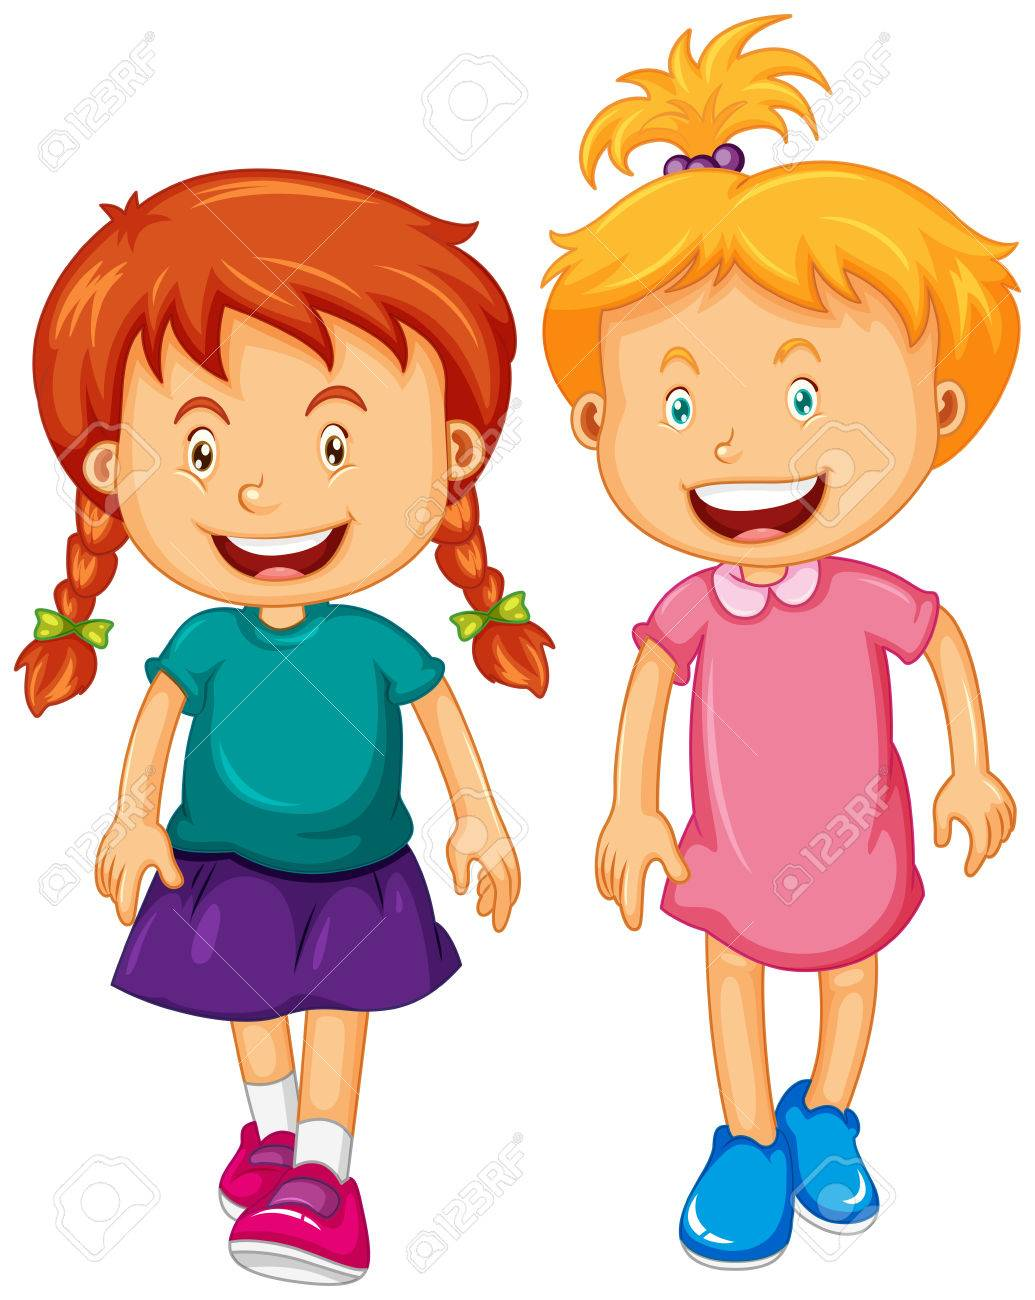 Two girls with happy face illustration.